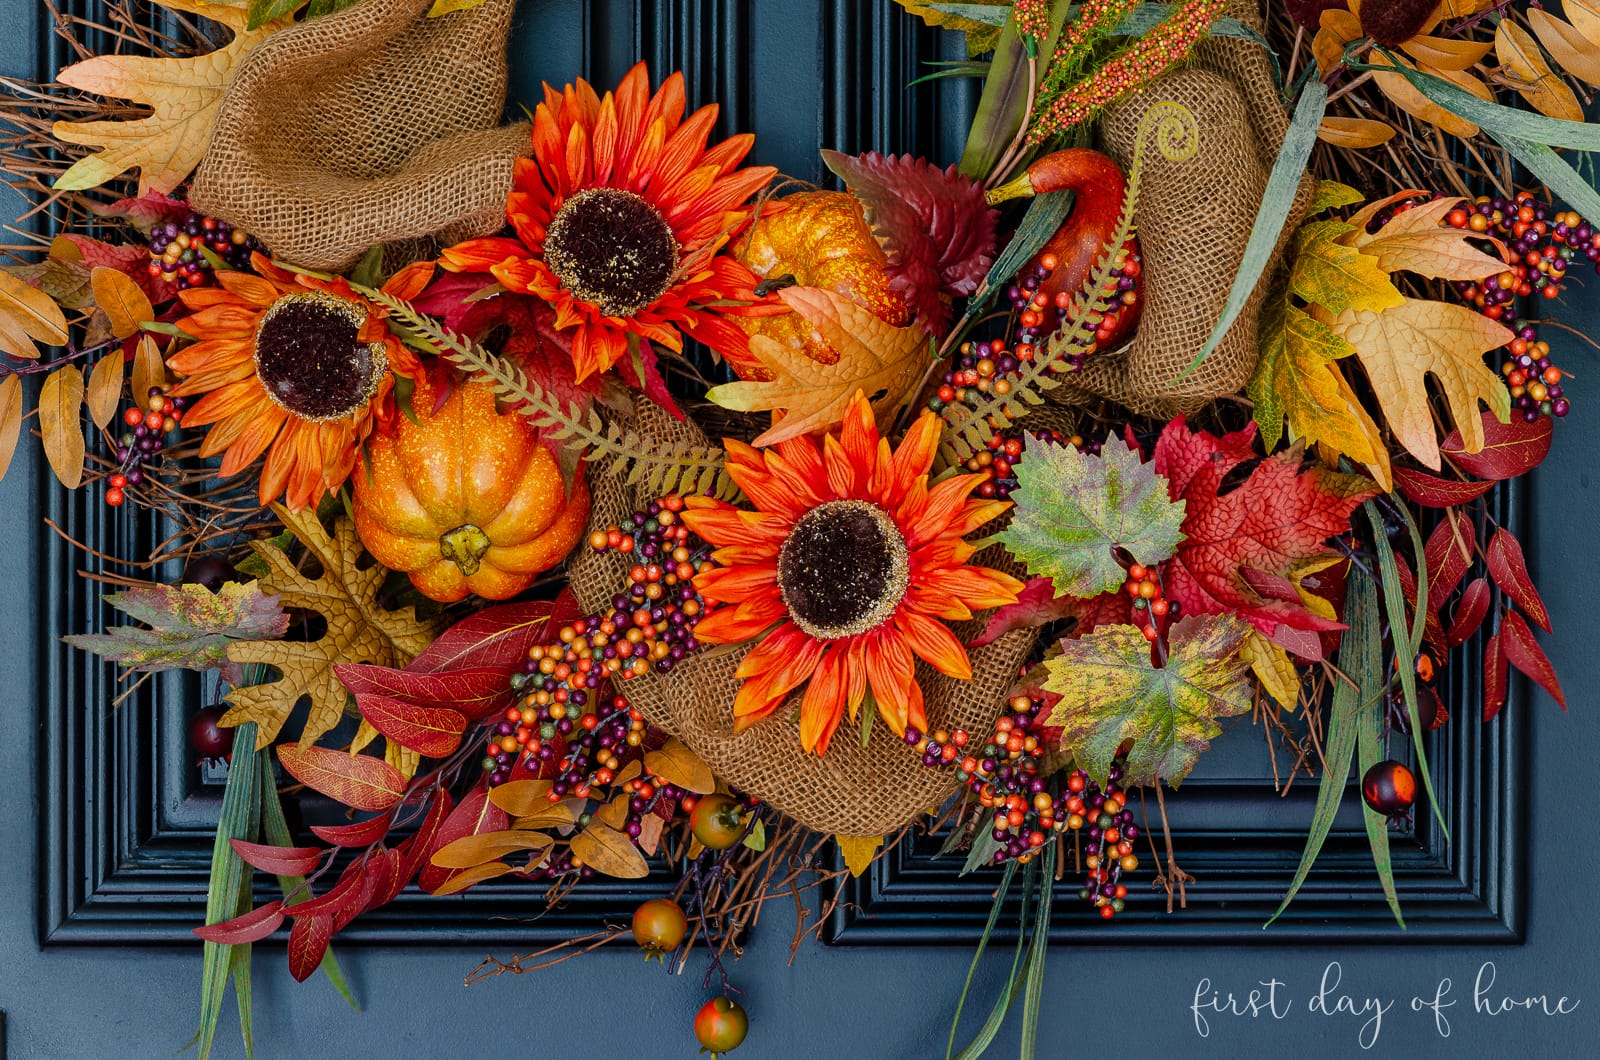 Wispy fall grapevine wreath with sunflowers, leaves and pumpkins on black front door